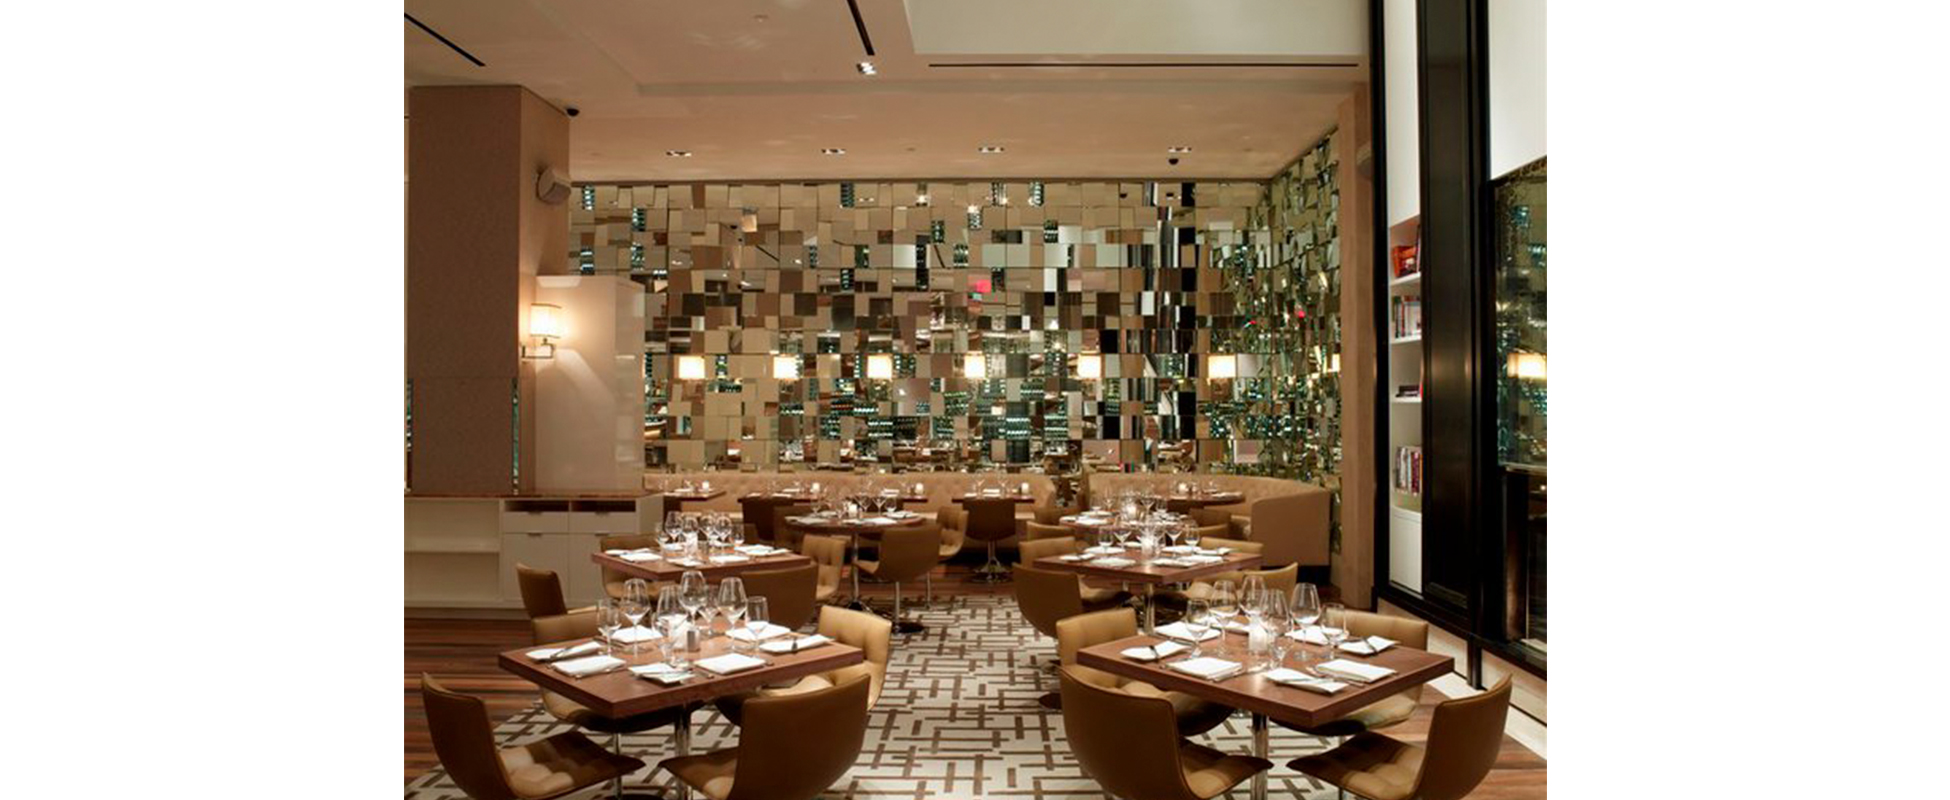 ESSEX-RESTURANT-NEW-YORK_04